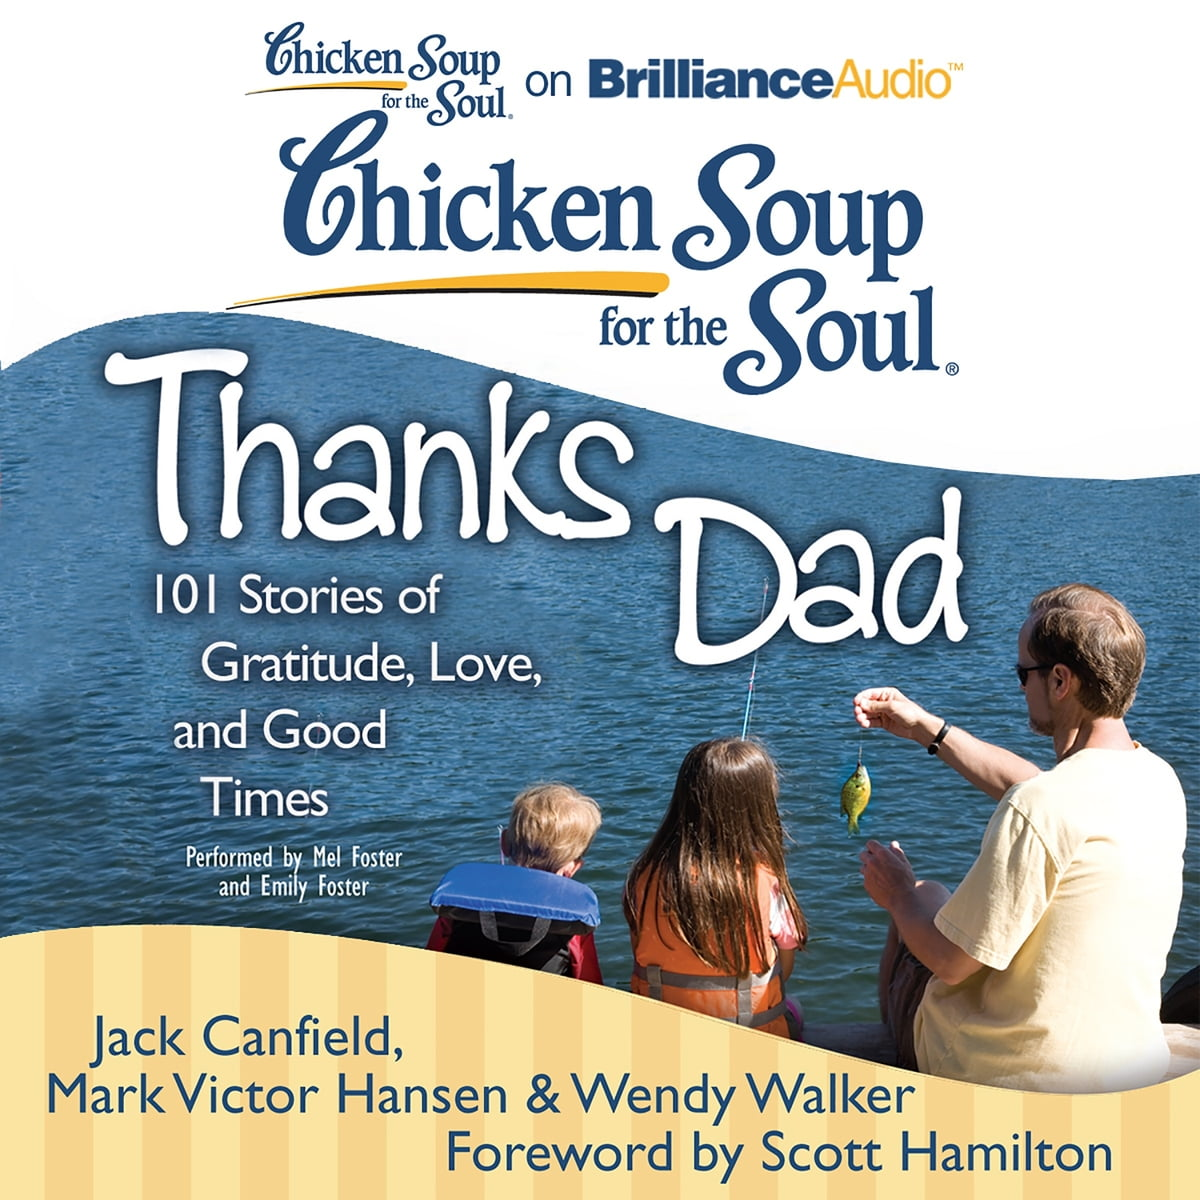 Chicken Soup for the Soul: Thanks Dad Audiobook by Jack Canfield -  9781455817634 | Rakuten Kobo